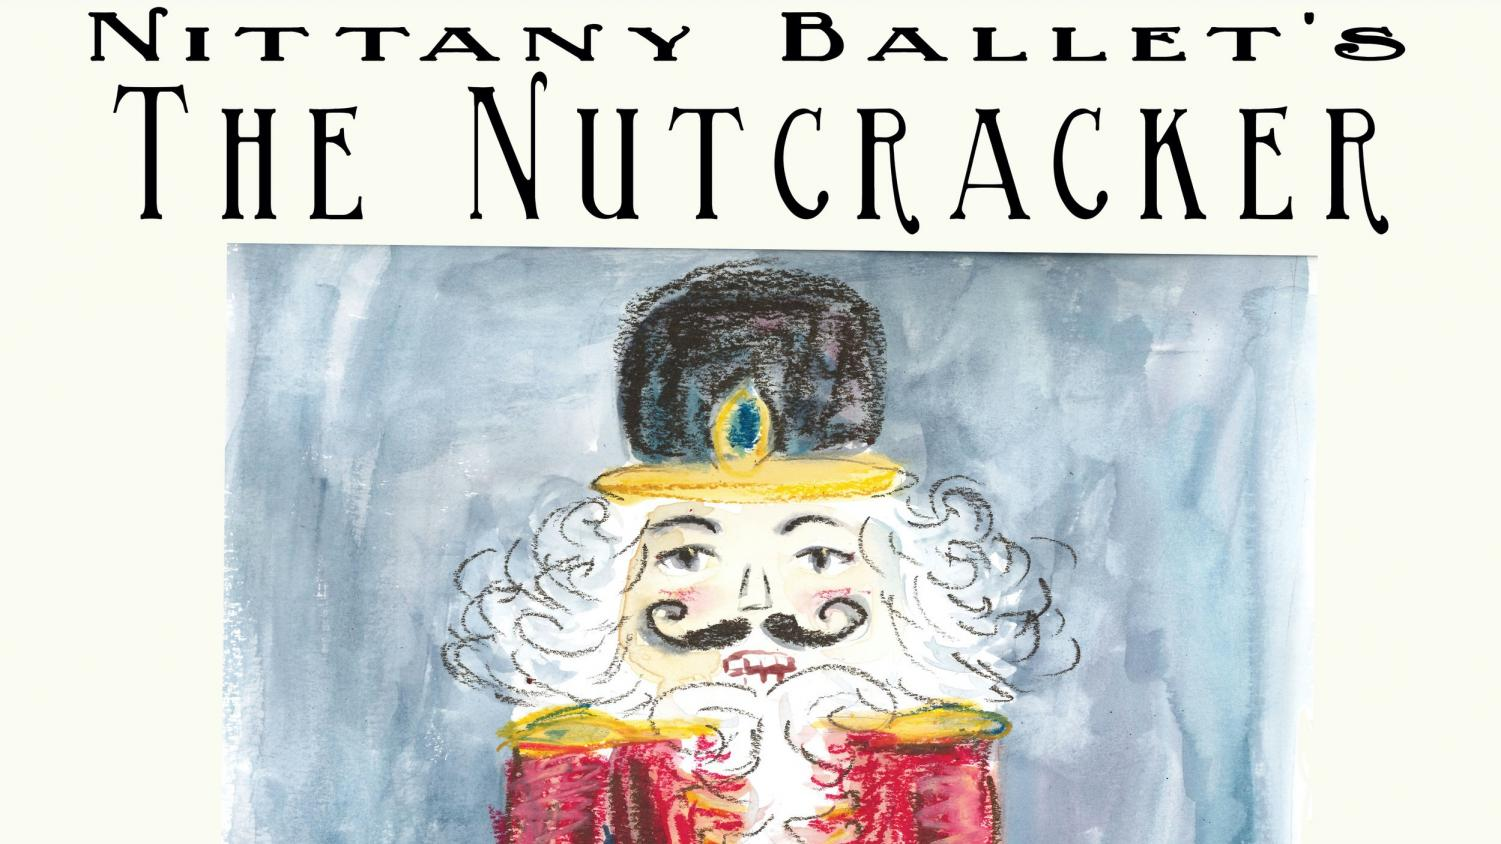 """The promotional poster for Nittany Ballet's The Nutcracker that included performances by Gabby Showalter, Emily Maciejczyk, Clara Pollock, and Molly Yoder. """"I love being able to be someone else for a few moments, as it provides a release from the stresses of high school and allows me to explore my own emotions and personality. The joy I experience while dancing surpasses any other feeling, and while it can be frustrating, I always know that there will be rewarding moments in due time,"""" Yoder said."""